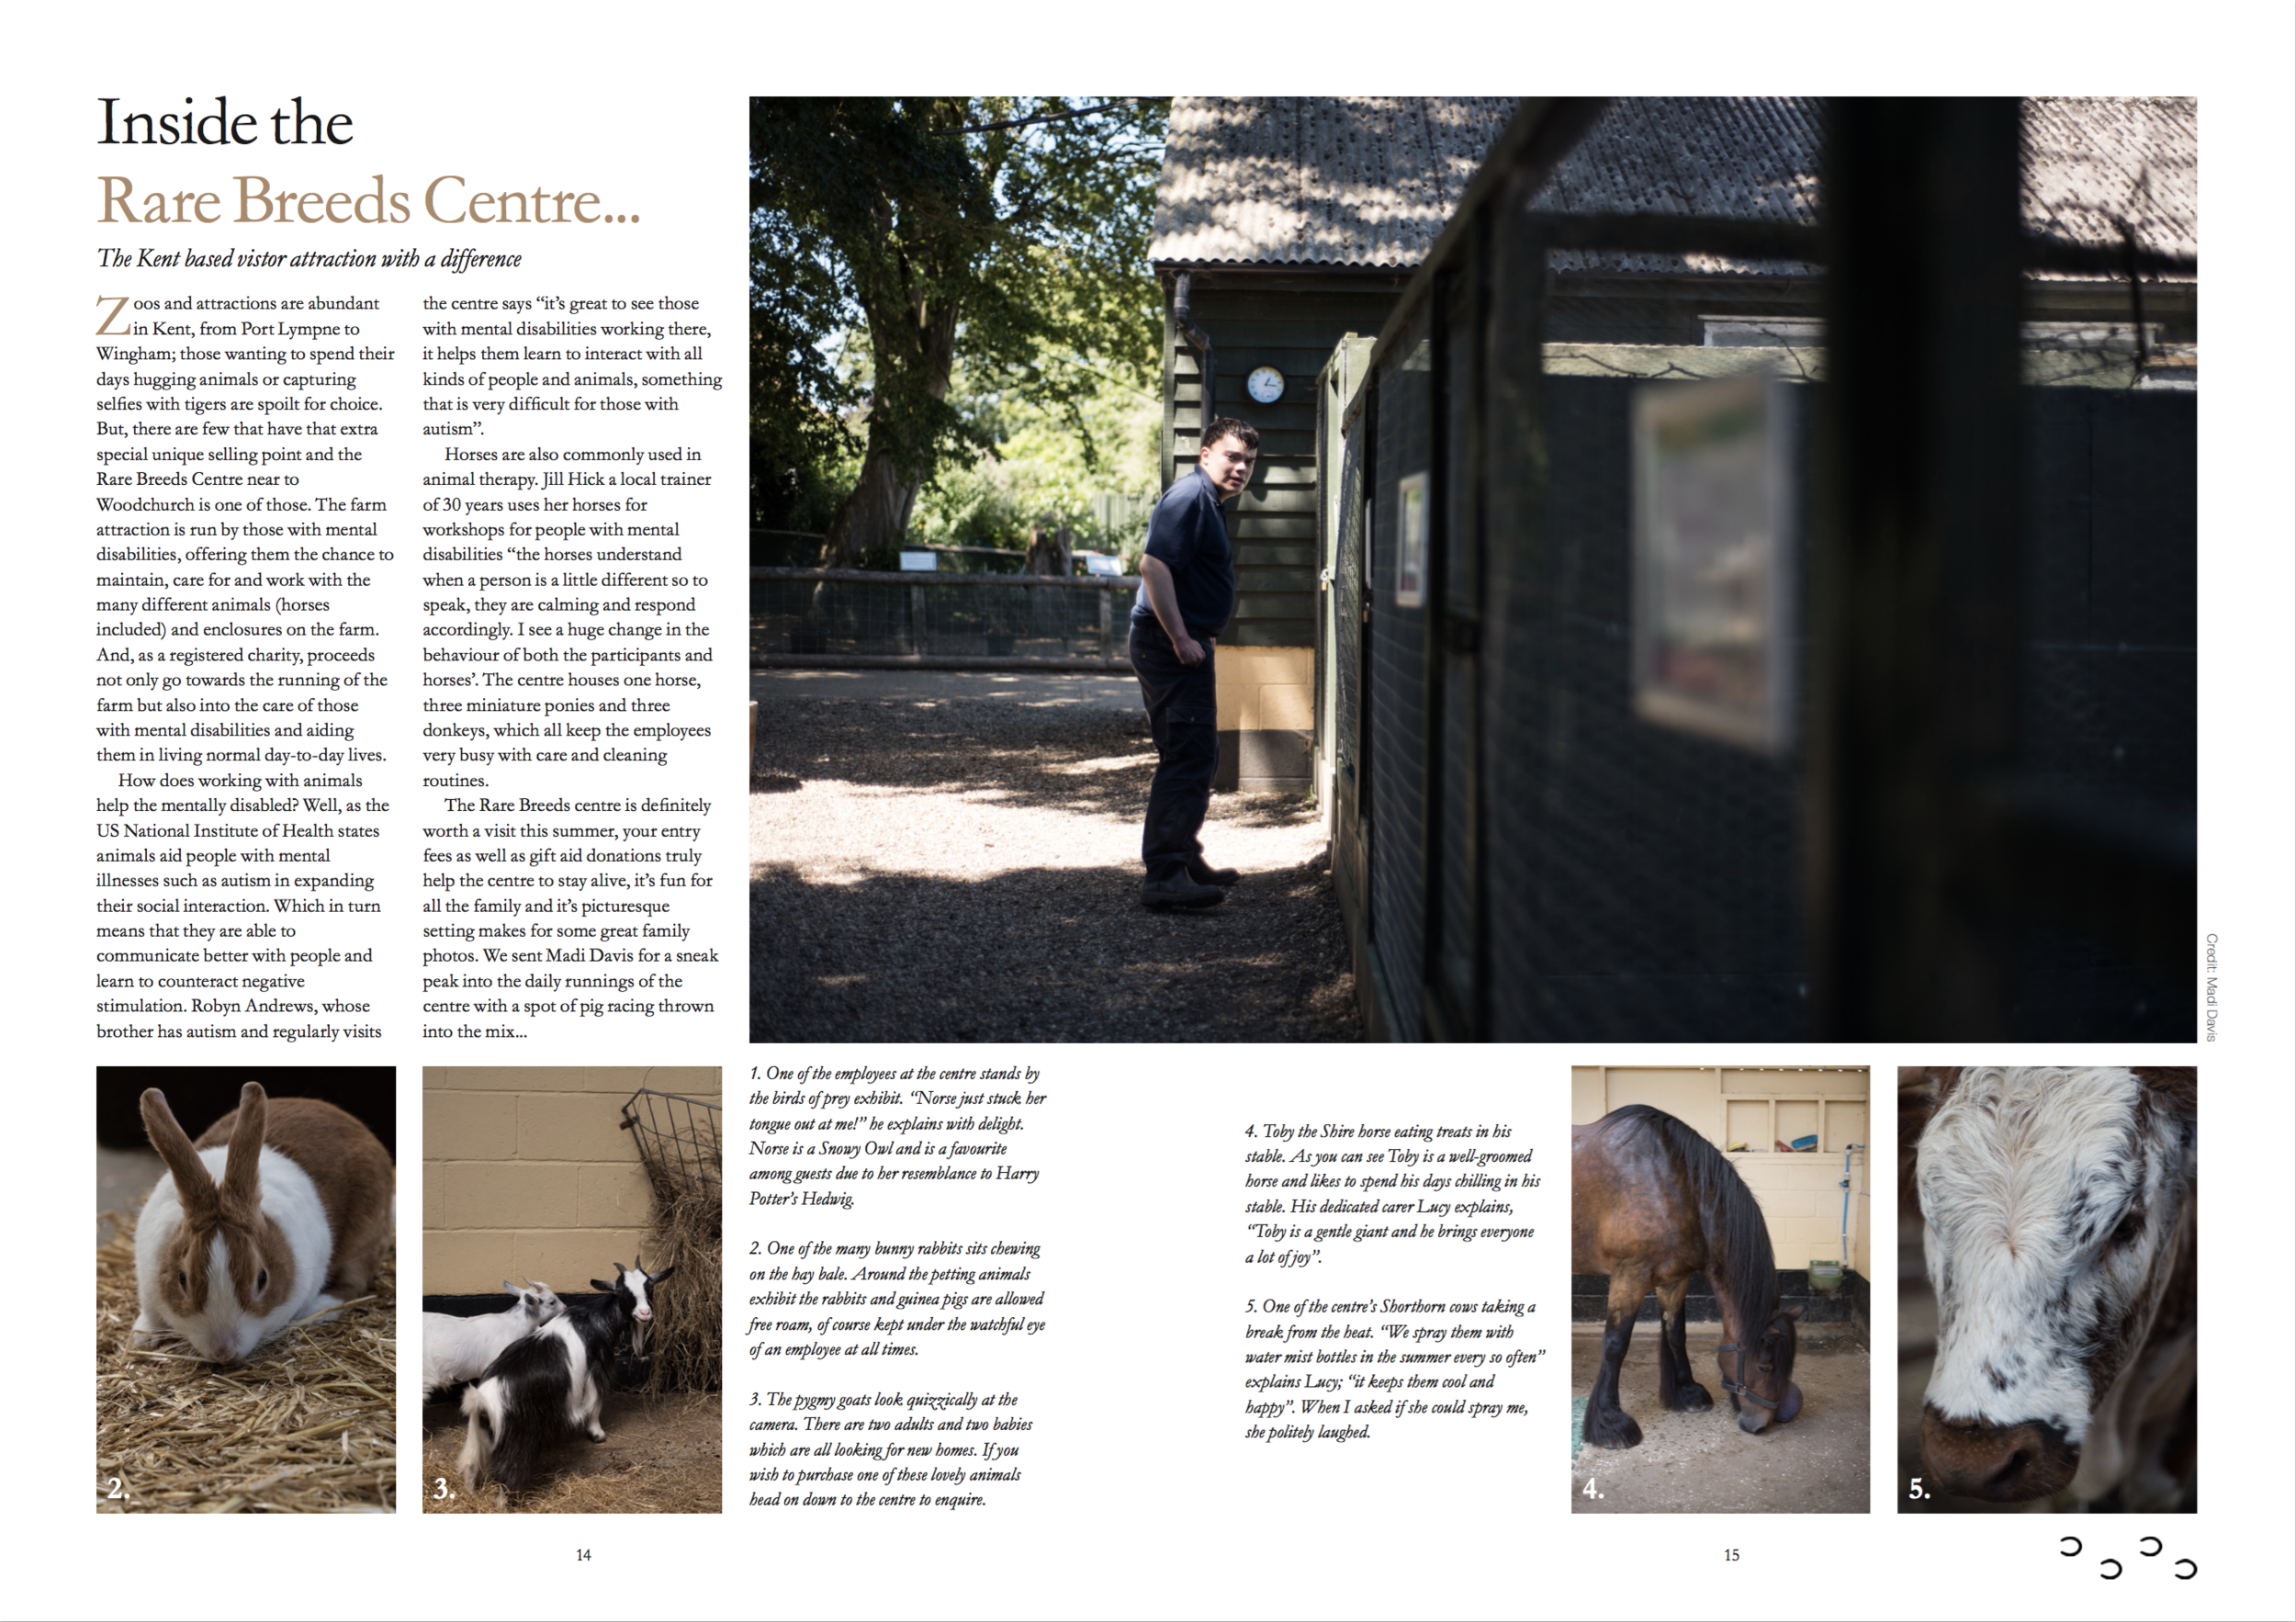 Excerpt from a photo essay on the Rare Breeds Centre